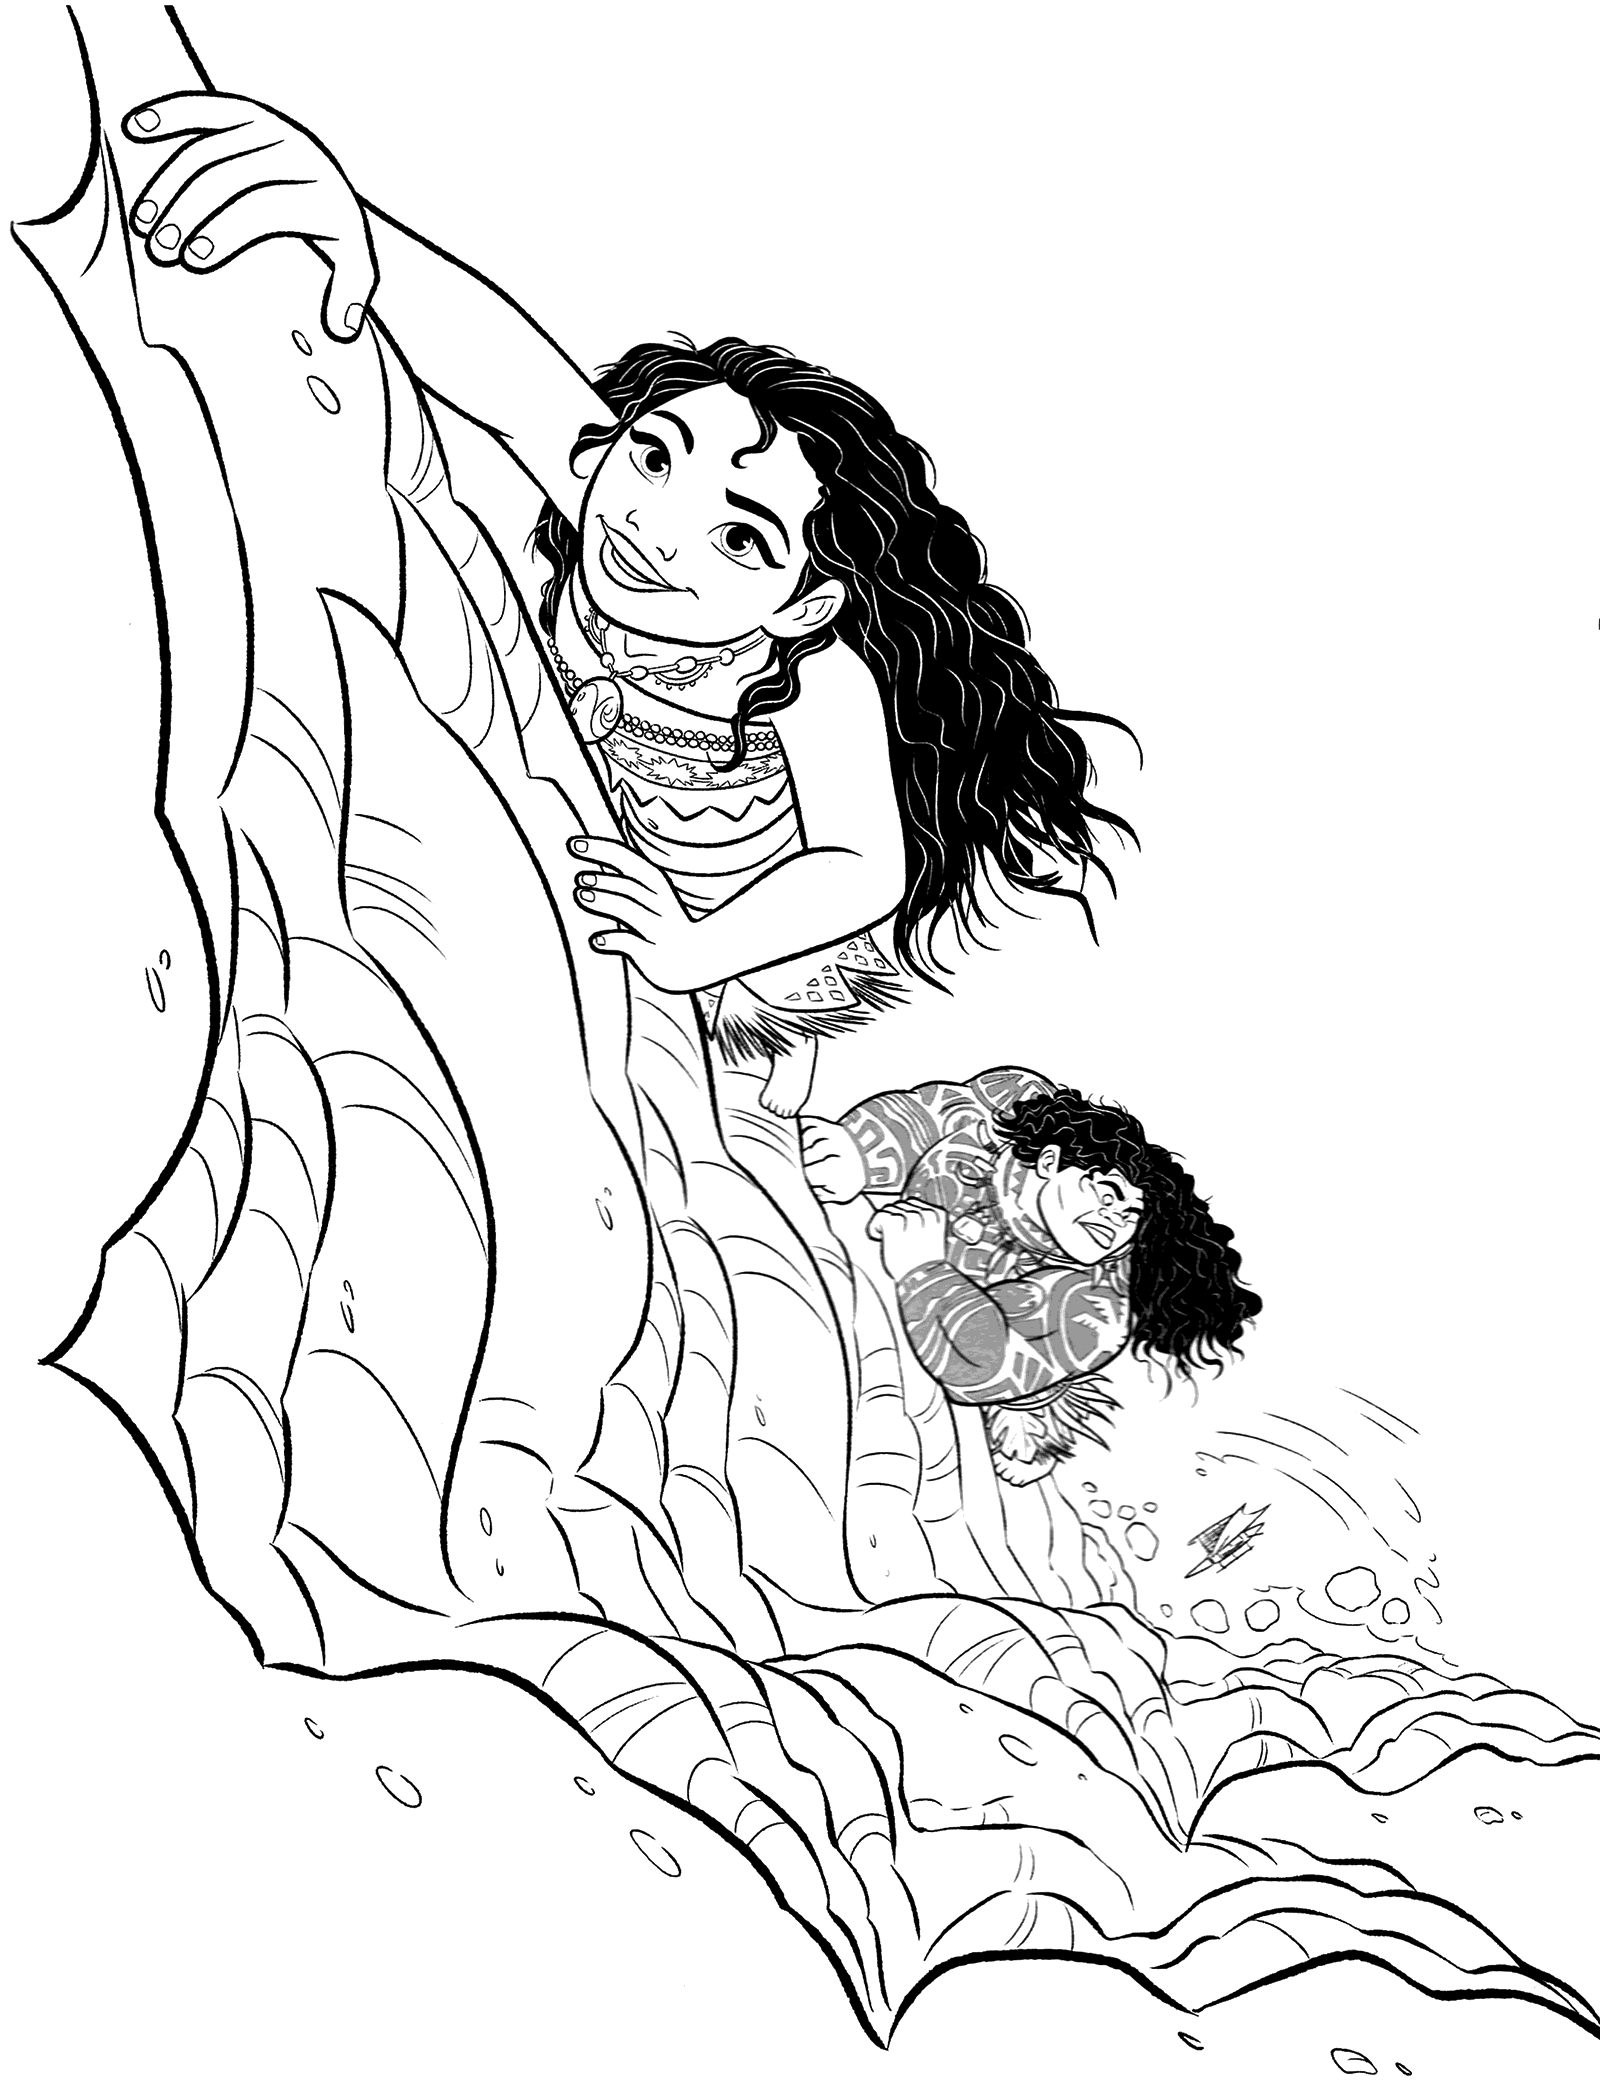 Coloring pages of moana